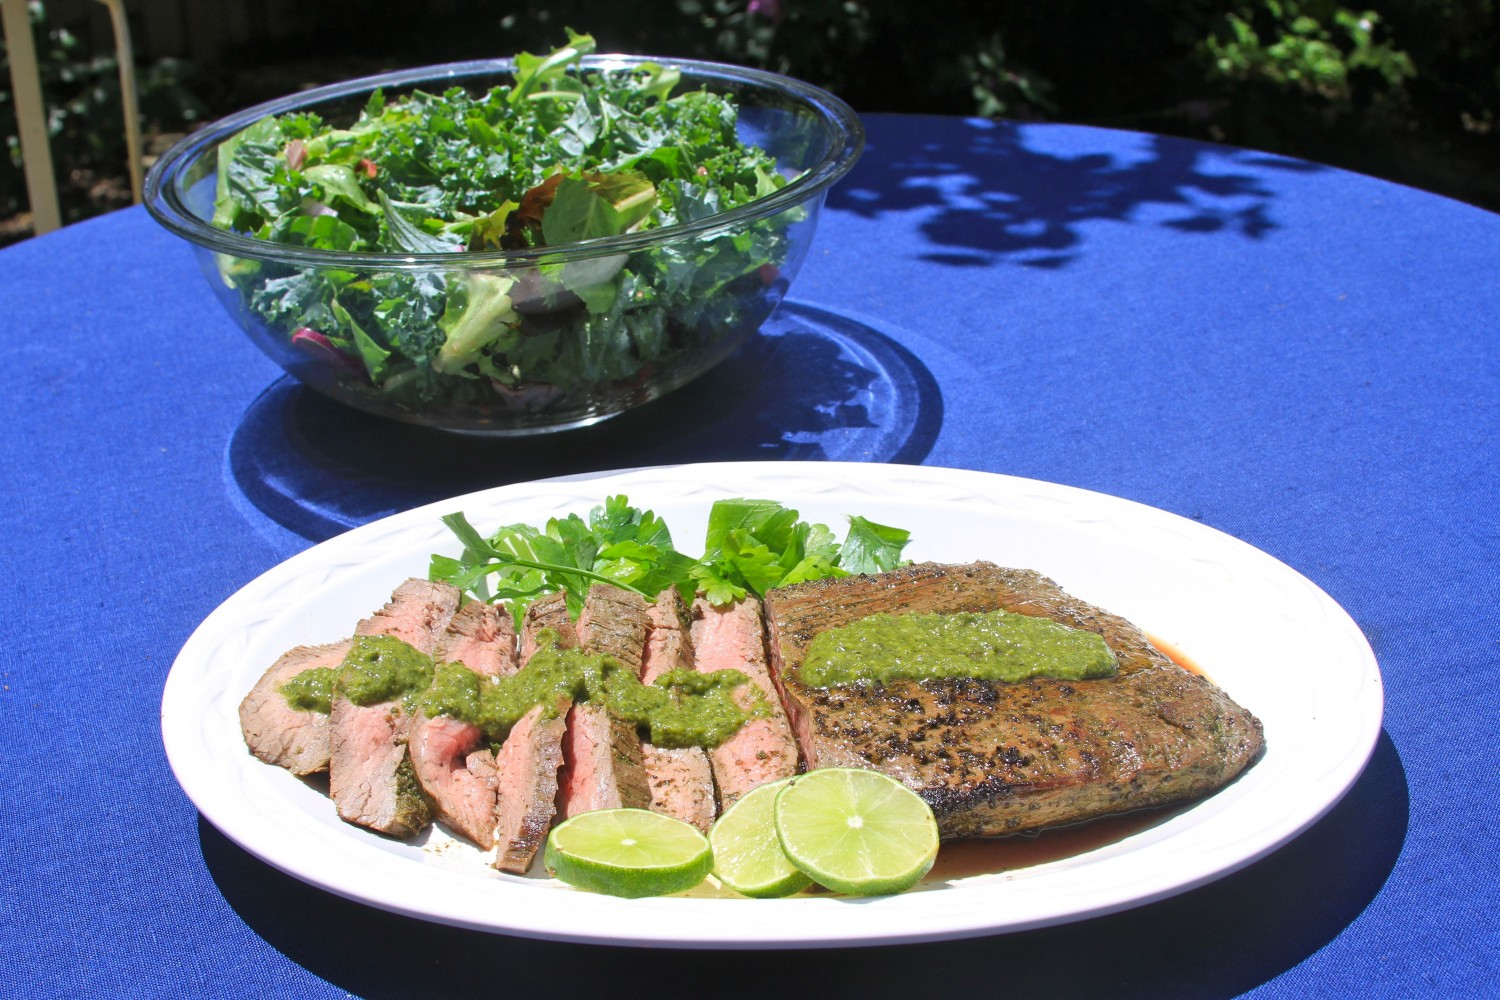 ... char grilled flank steak salad with chimichurri sauce makes an easy